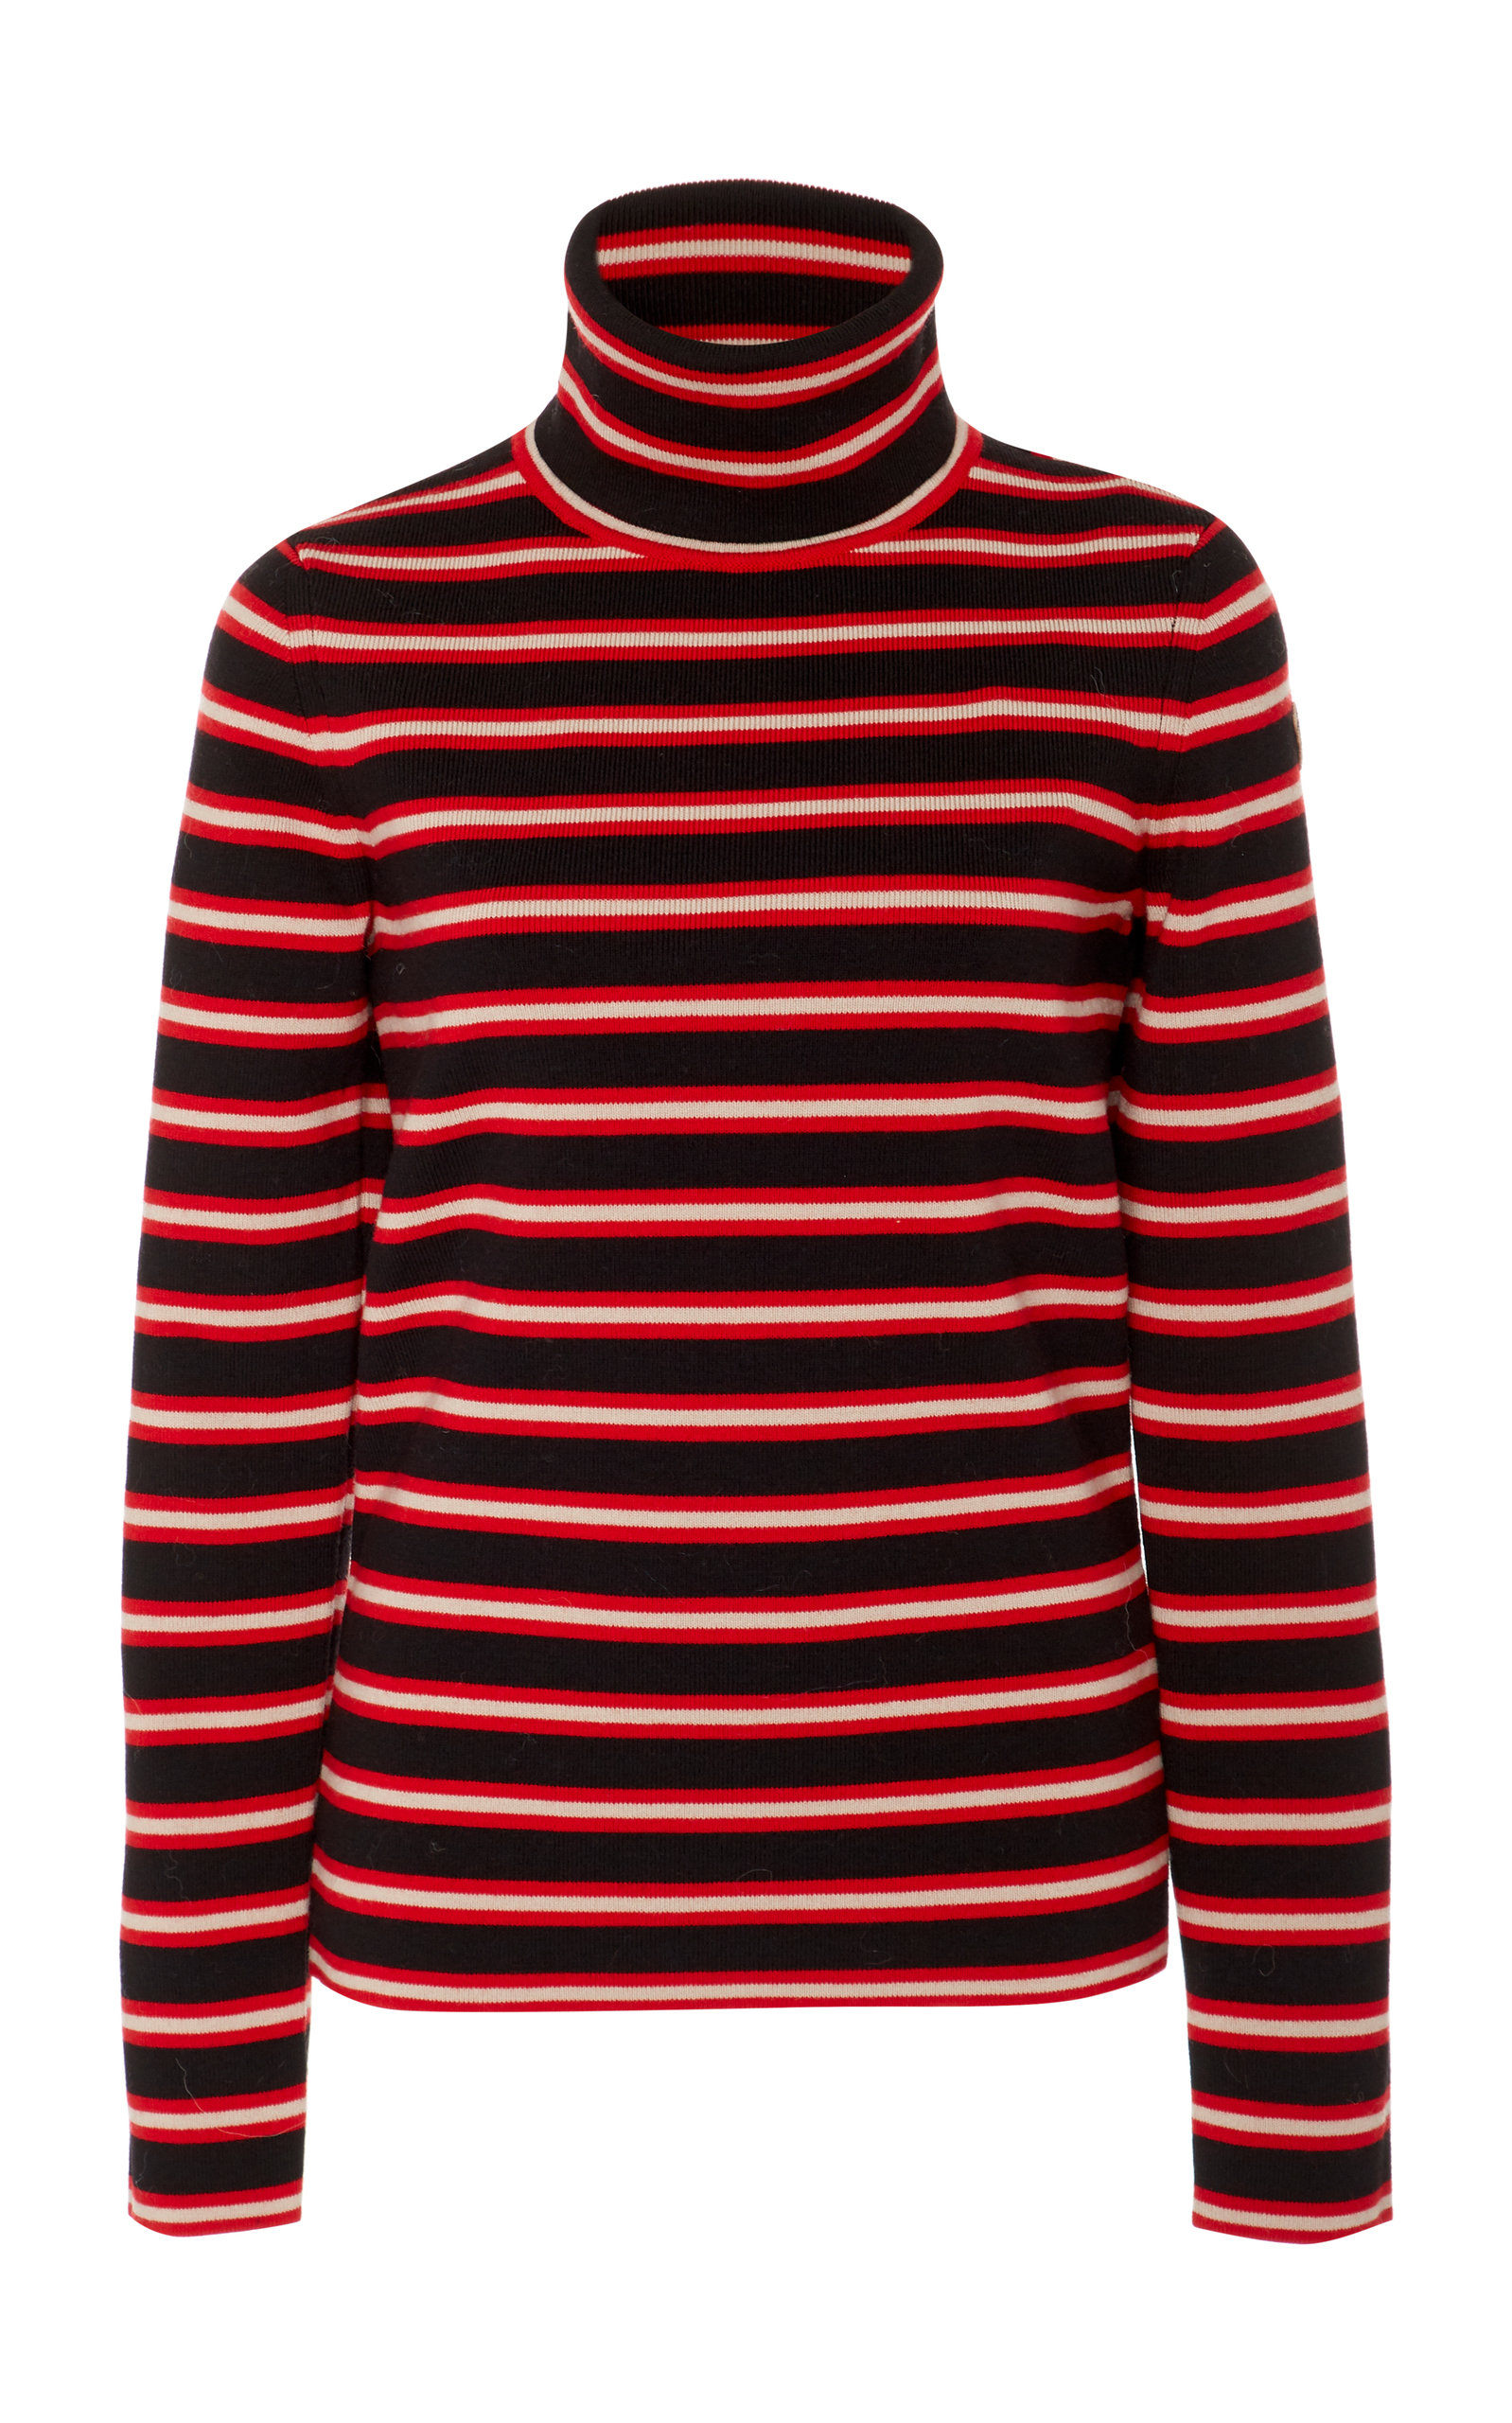 Moncler GeniusStriped Stretch-Wool Turtleneck Sweater. CLOSE. Loading